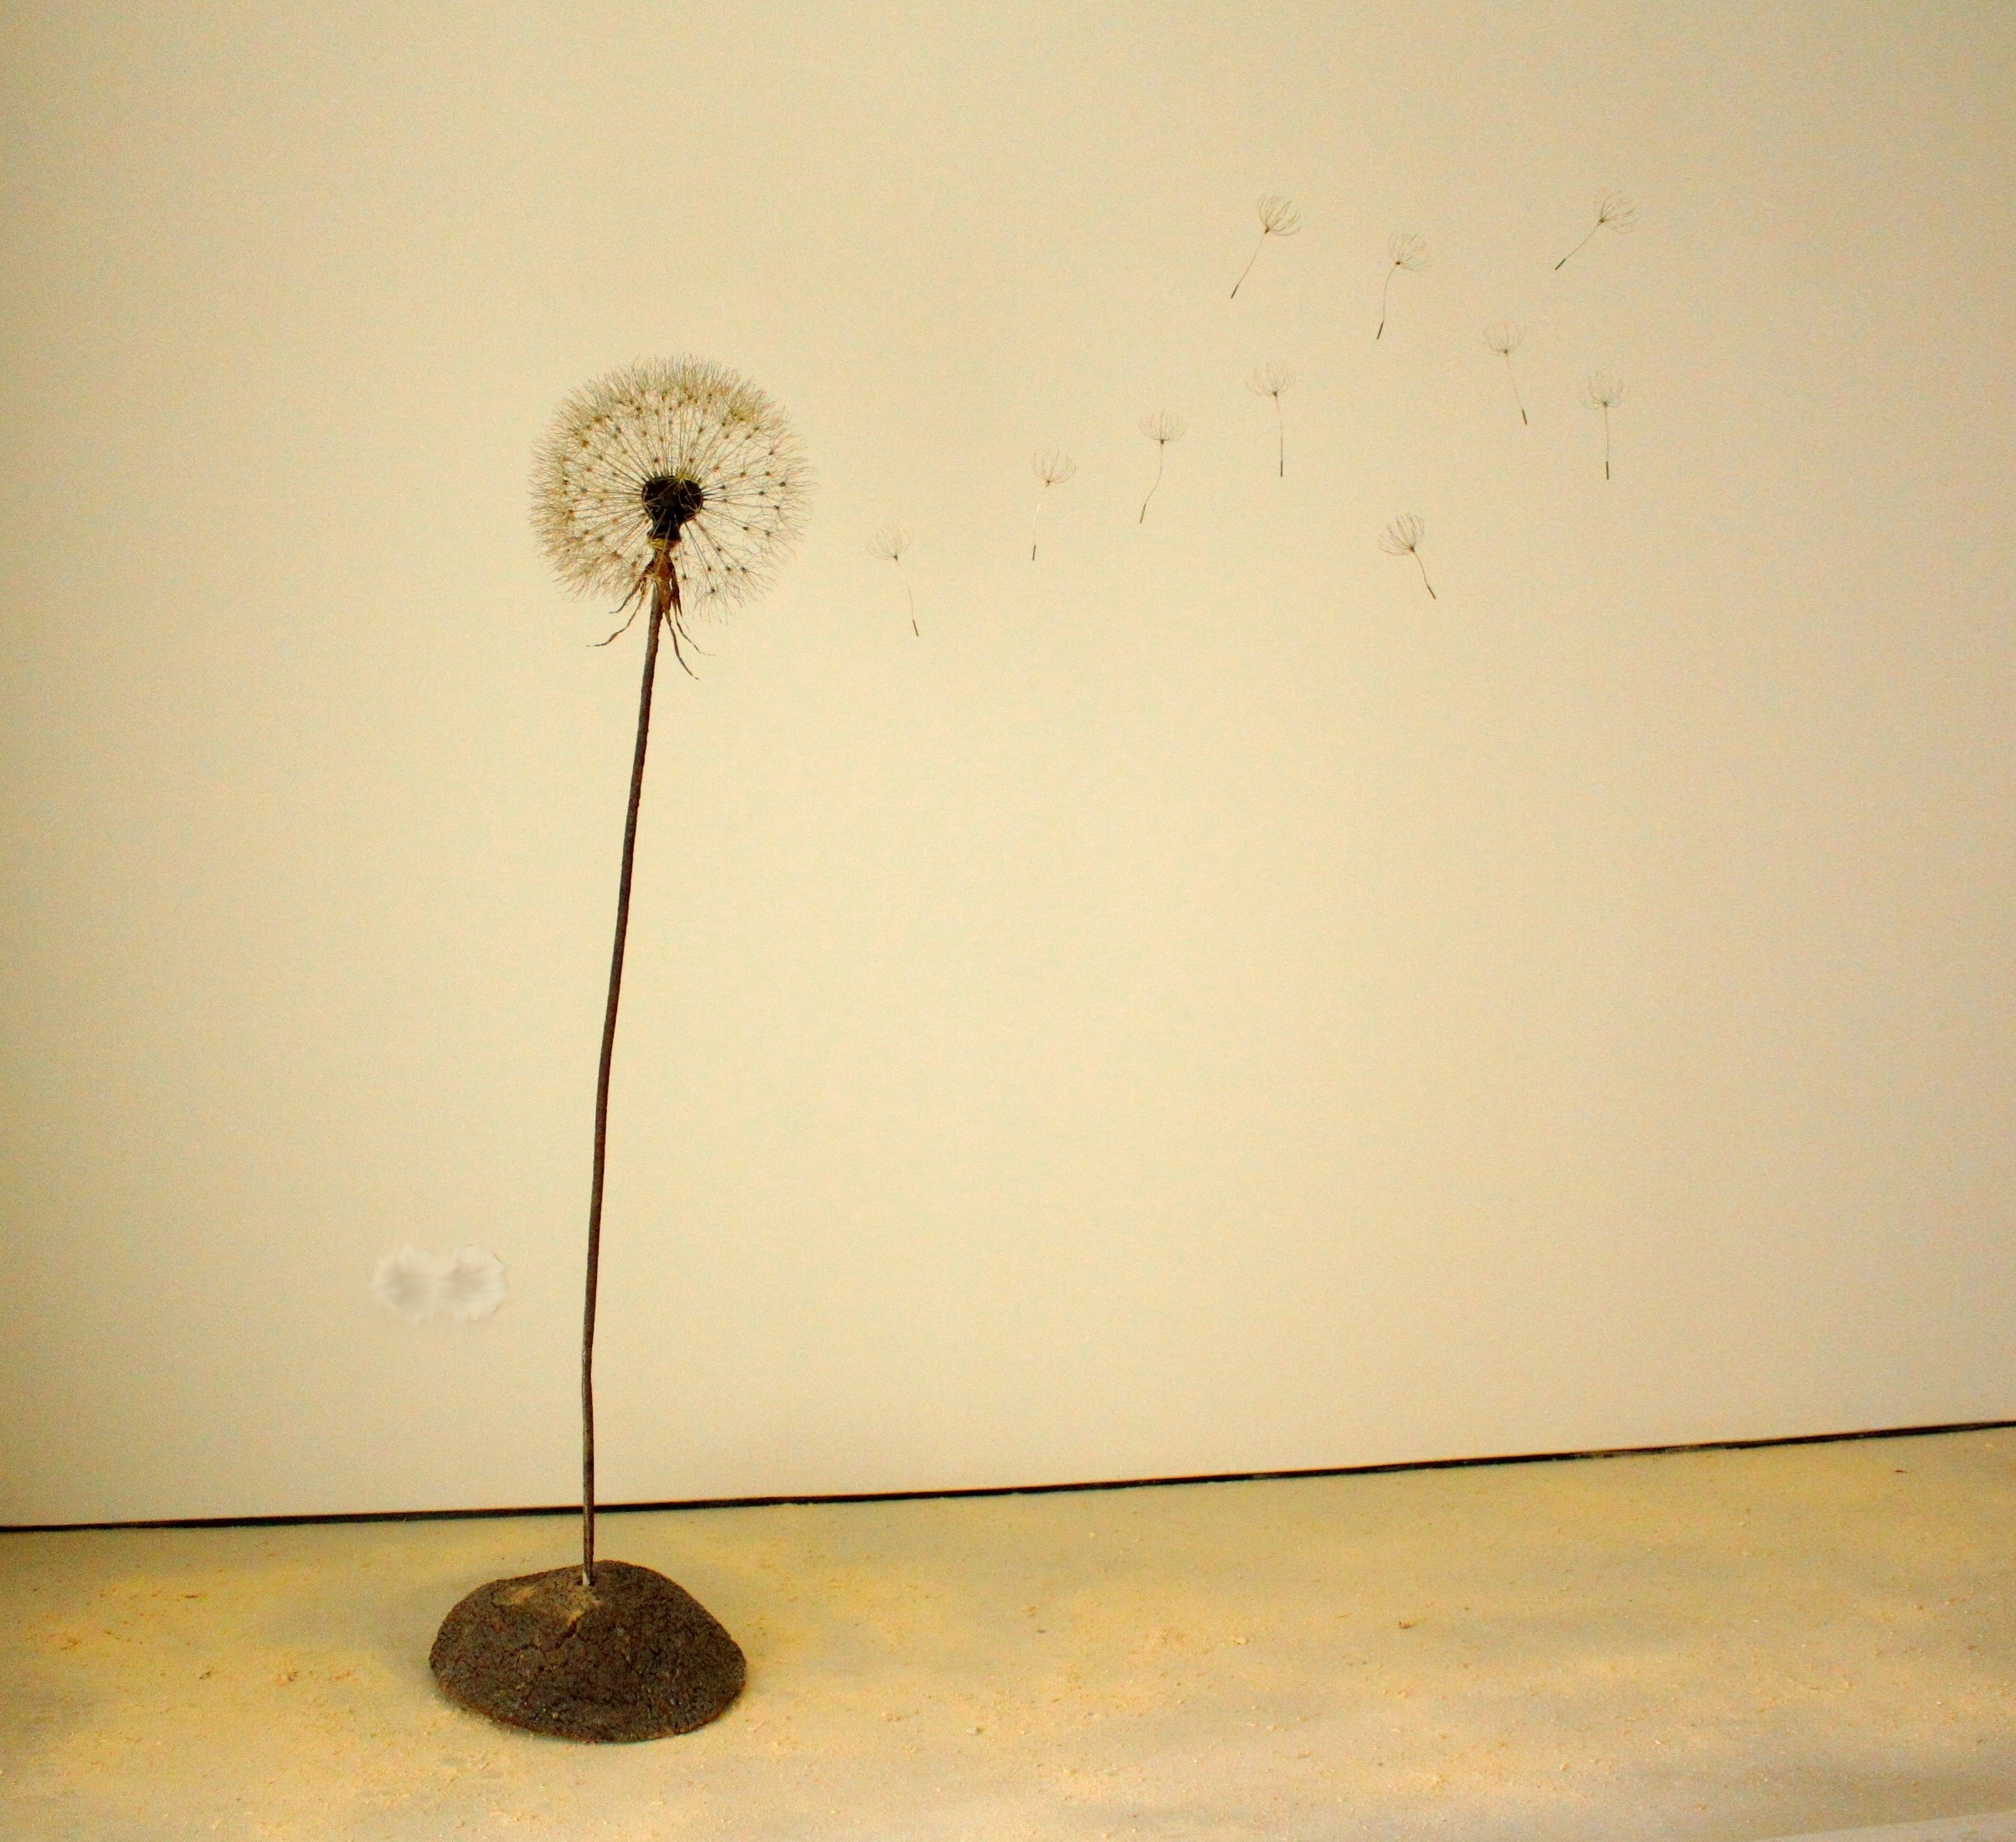 Taraxacum Officinale, original Nature Iron Sculpture by Arnold van Rossum